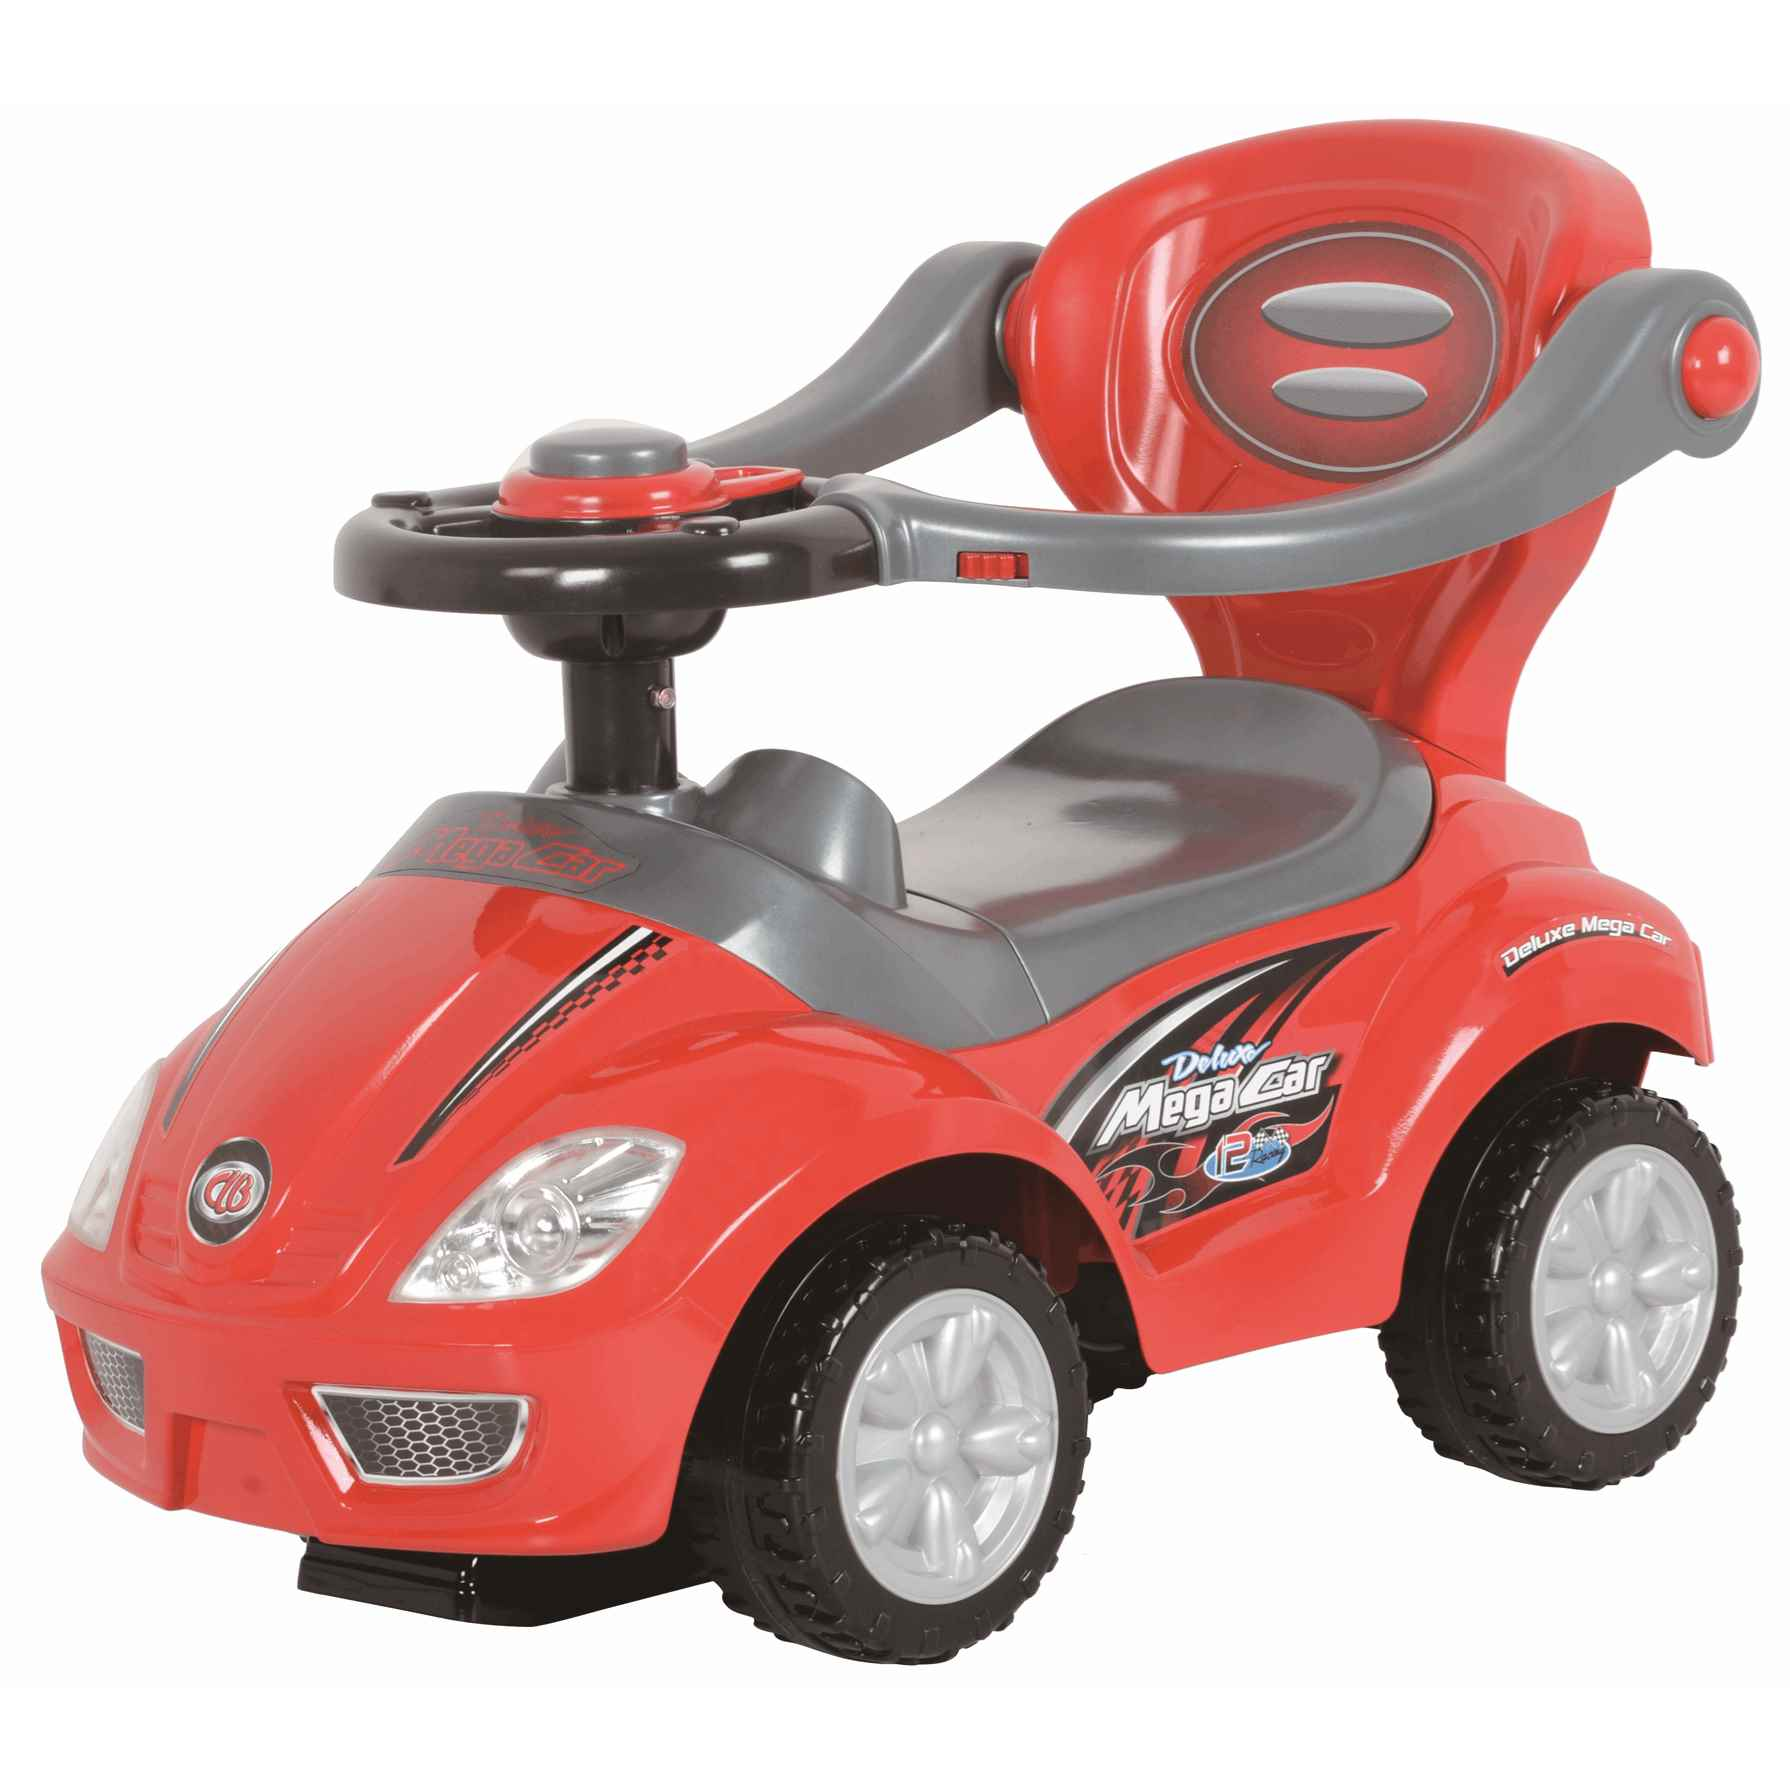 Infant Planet Correpasillos ¡3 en 1! Convertible Rojo